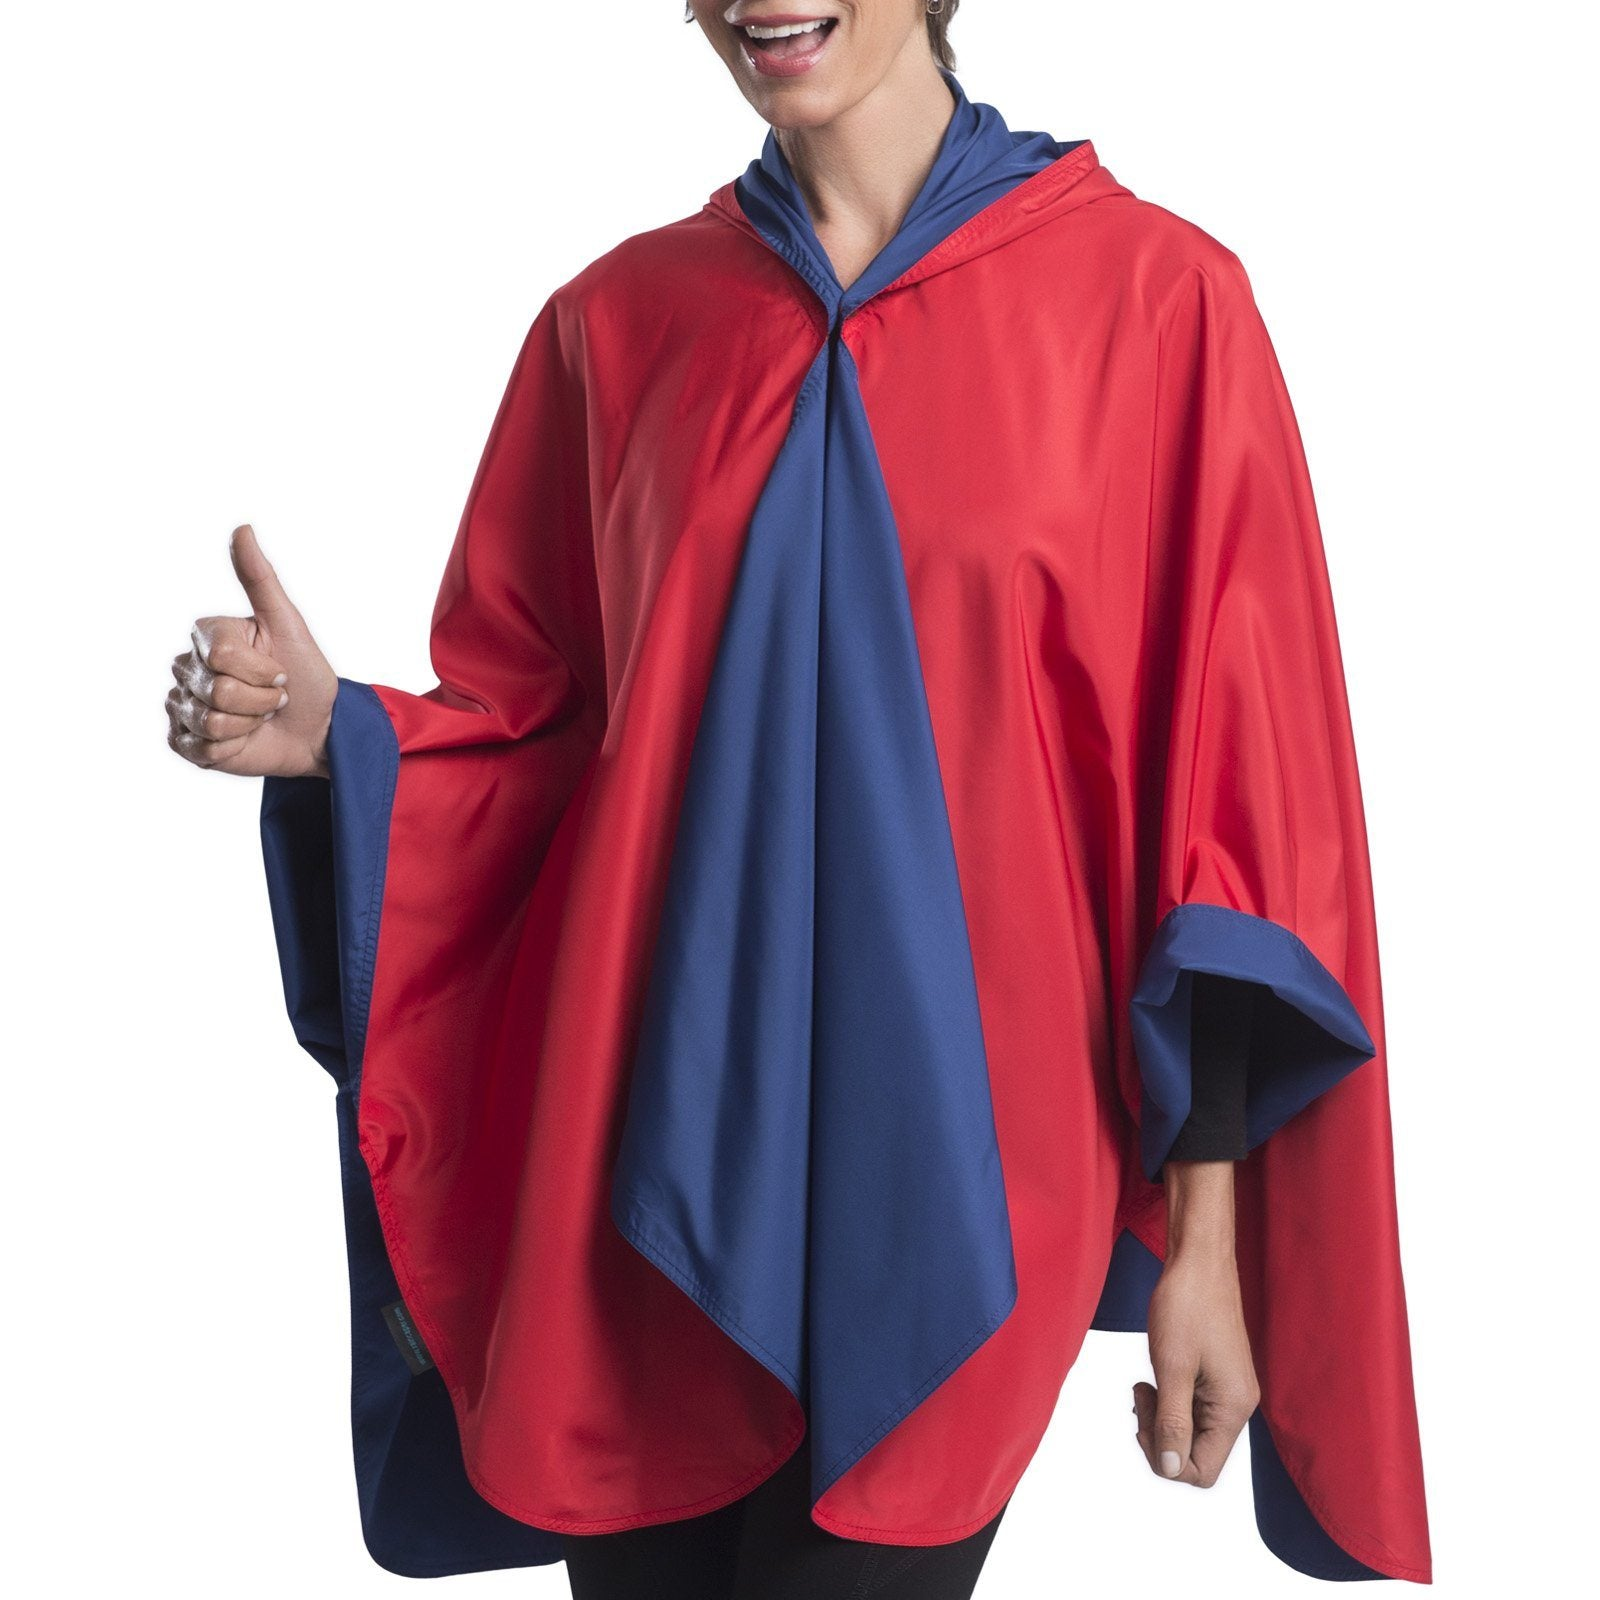 Woman wearing a Navy & Red Wind & Rainproof Sport Cape with the Navy side out, revealing the Red print at the lapels,neckline and cuffs